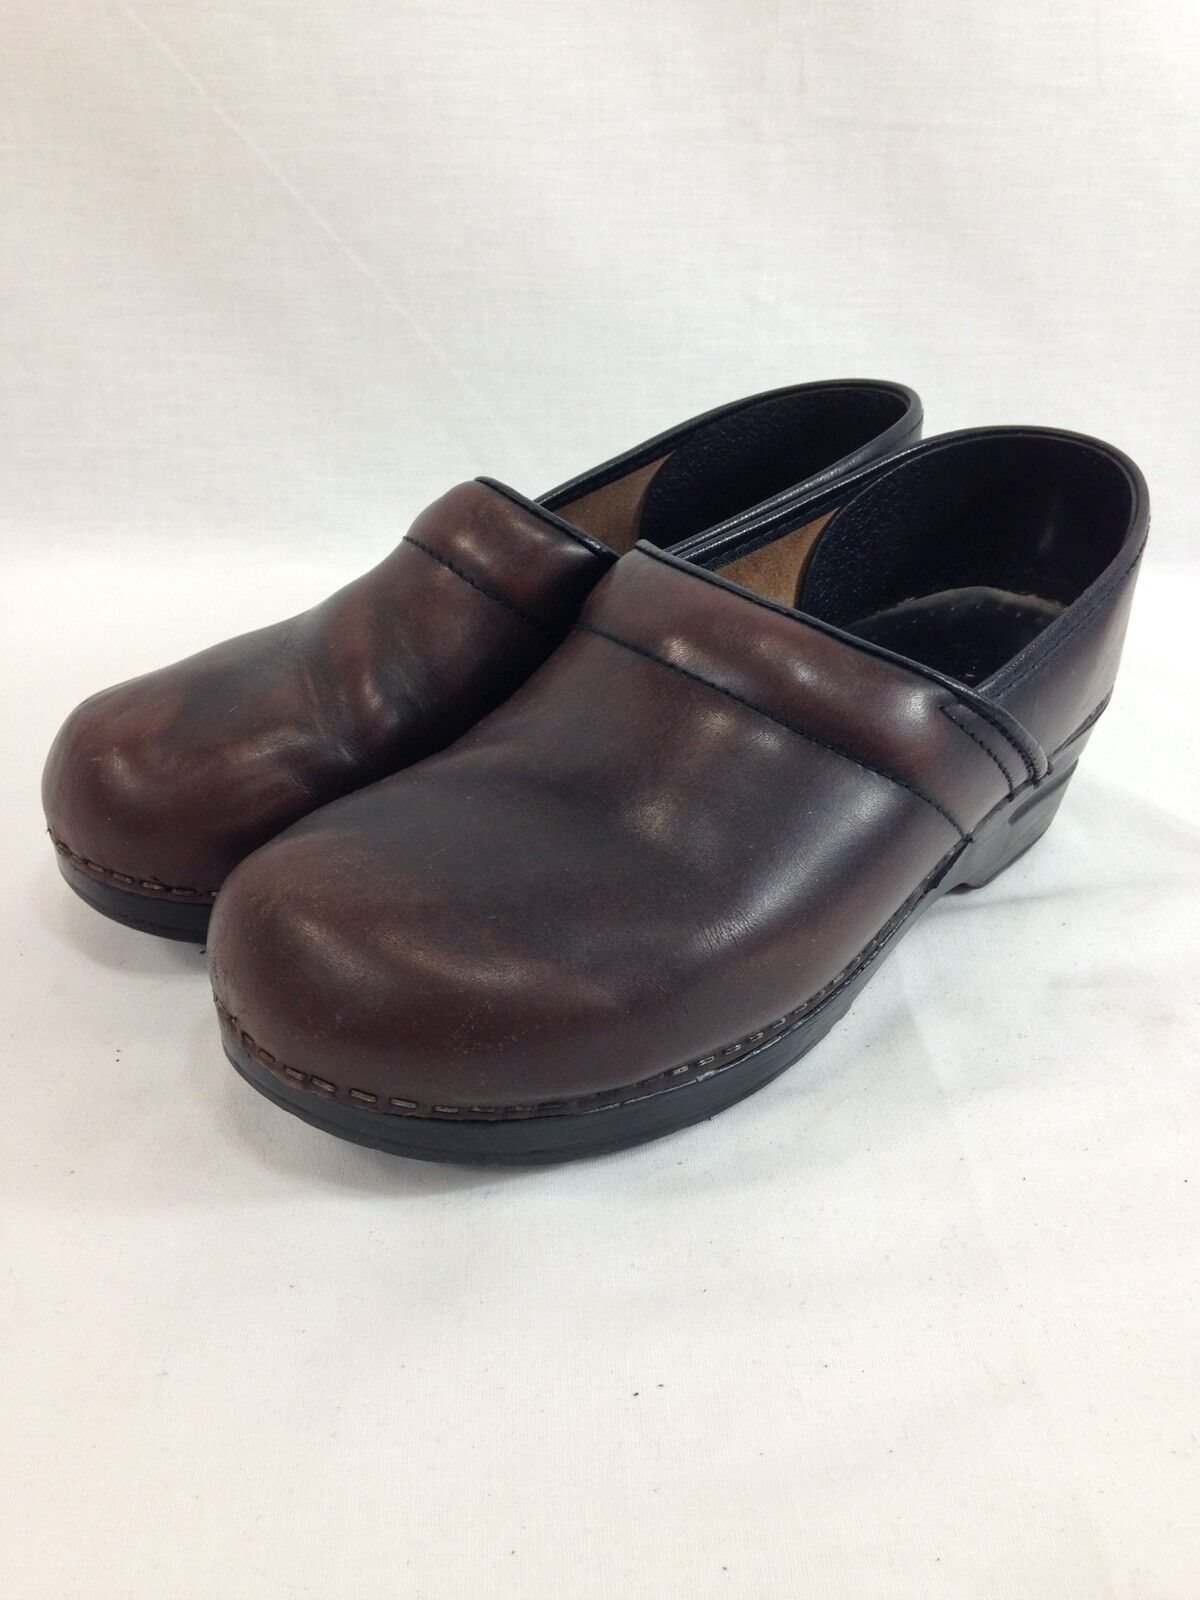 Dansko Shoes Womens US 9.5 Brown Leather Slip On Comfort Clog Occupational